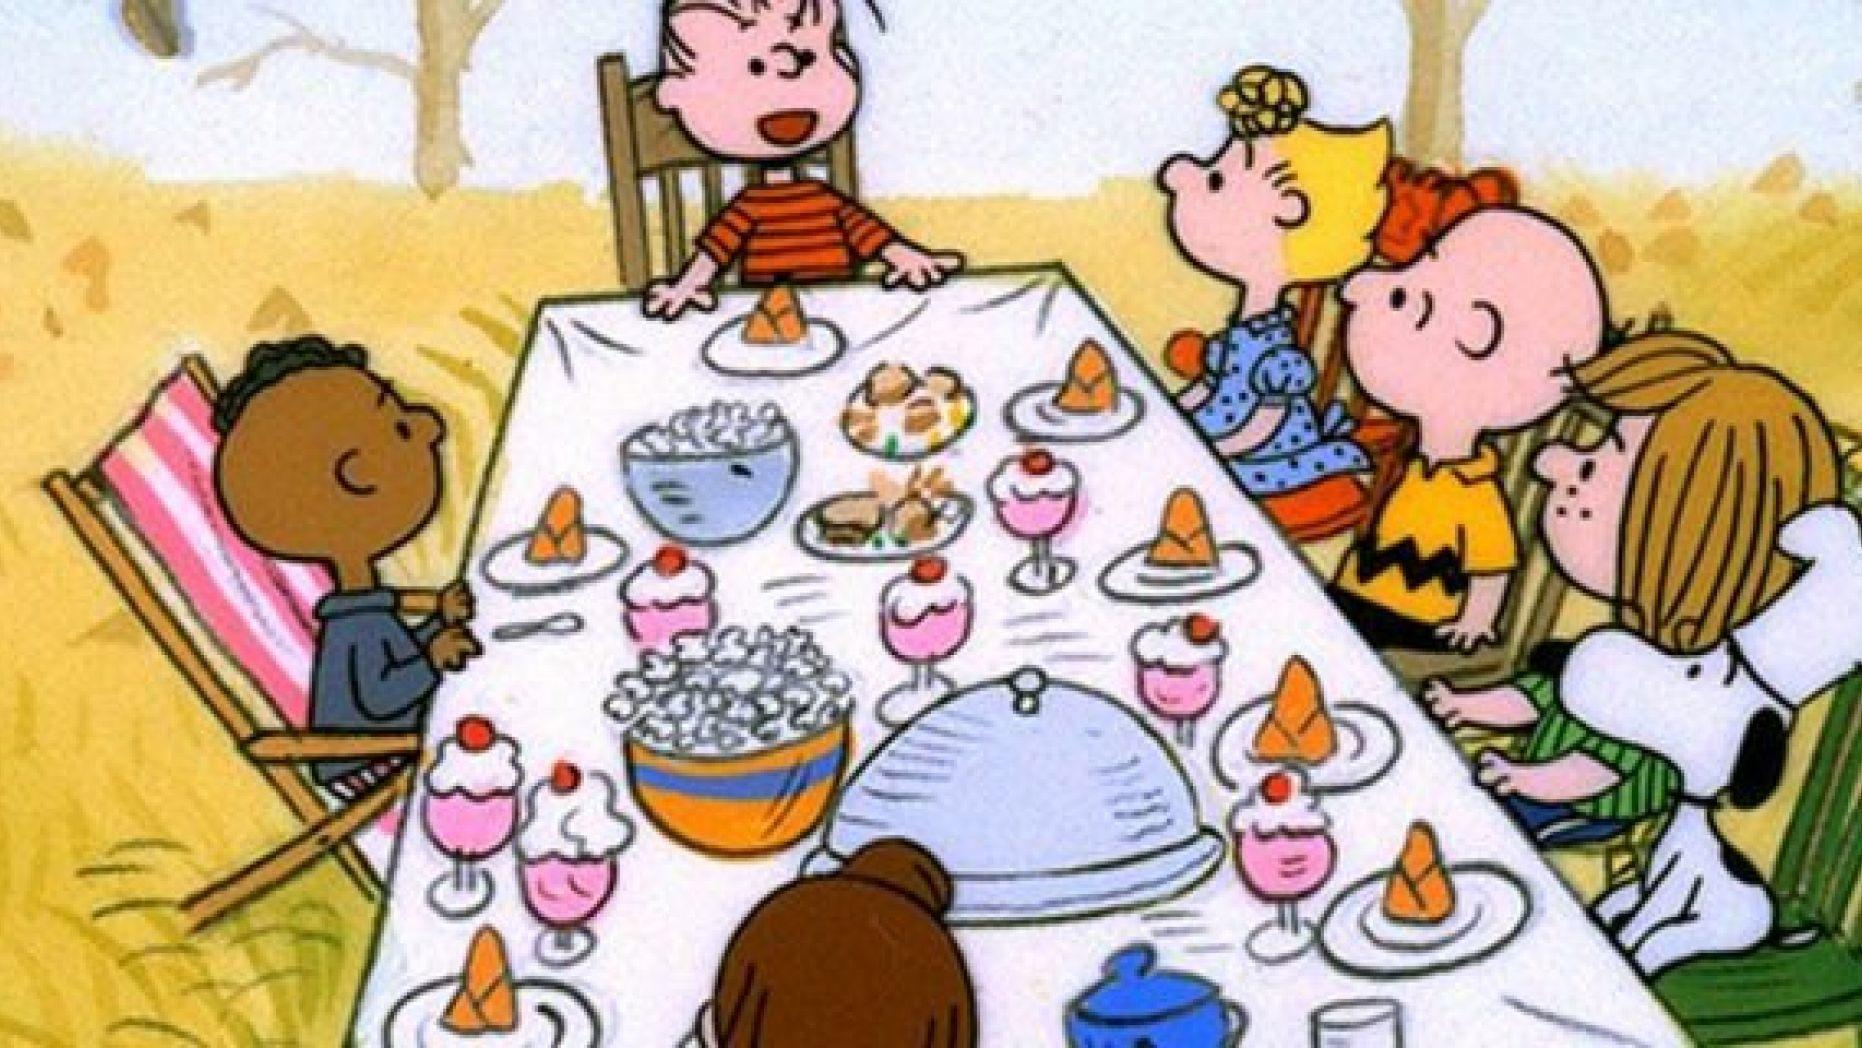 Charlie Brown cartoon labelled racist over depiction of Thanksgiving.